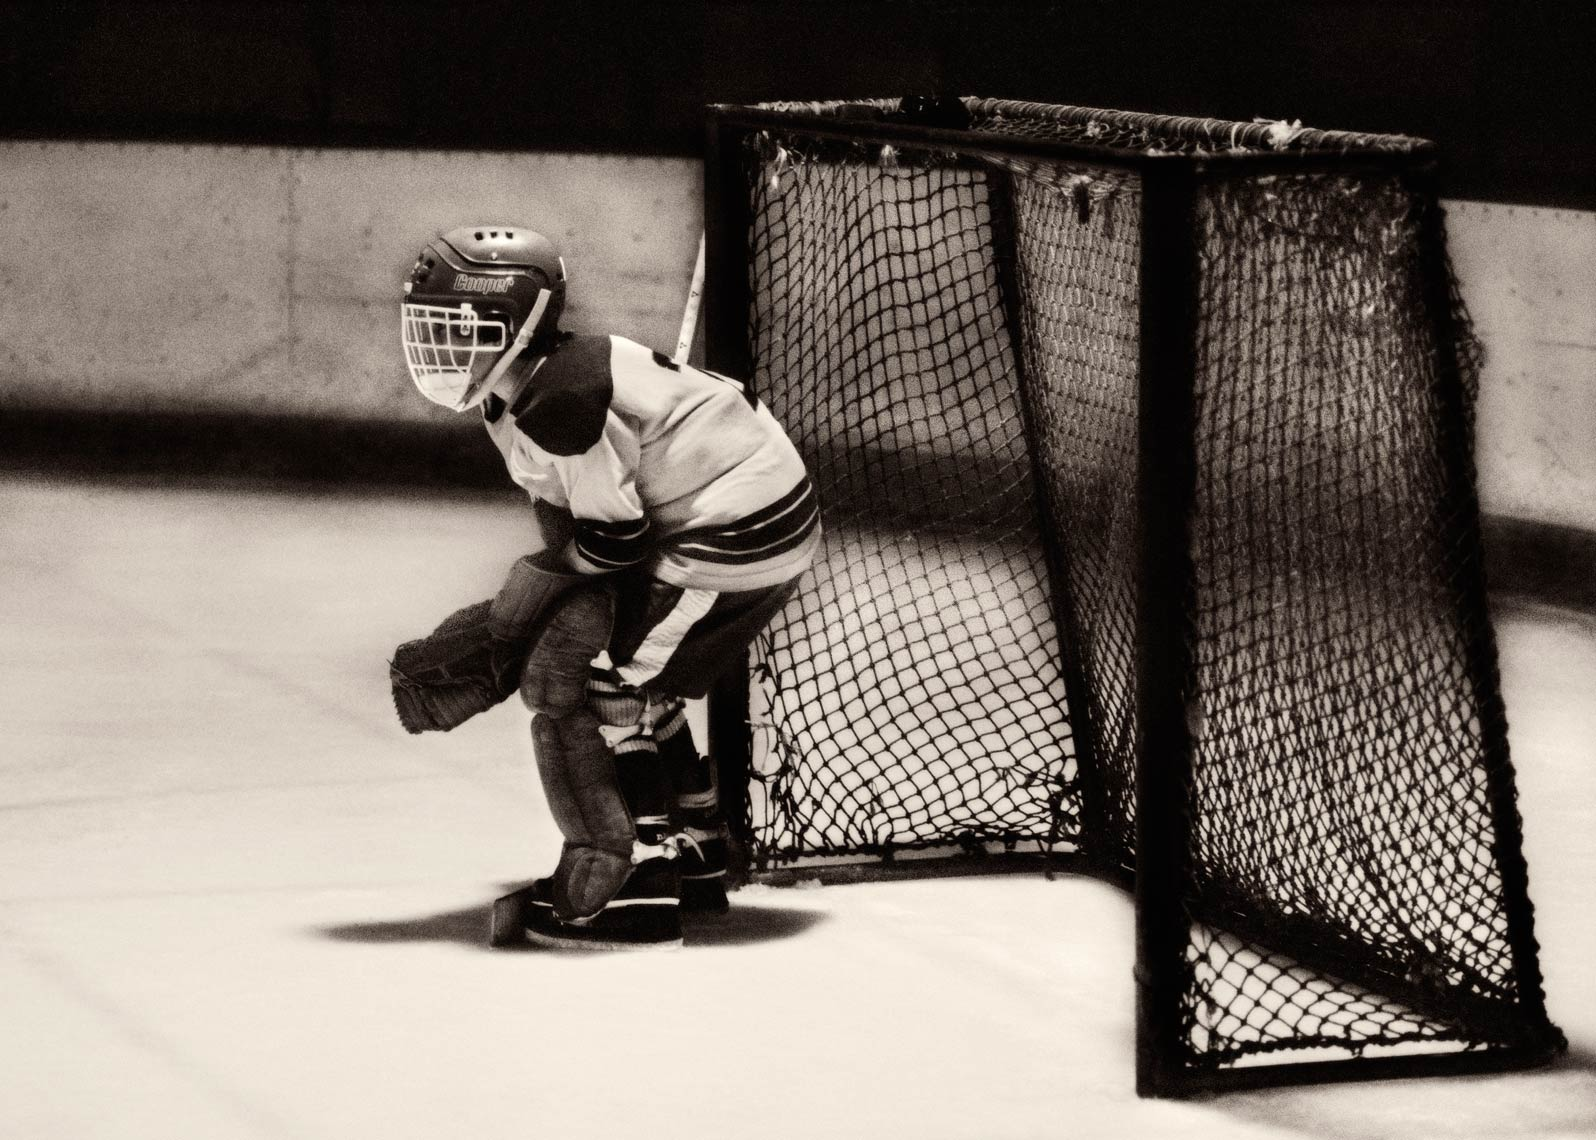 Novice-goalie-LARGE.jpg